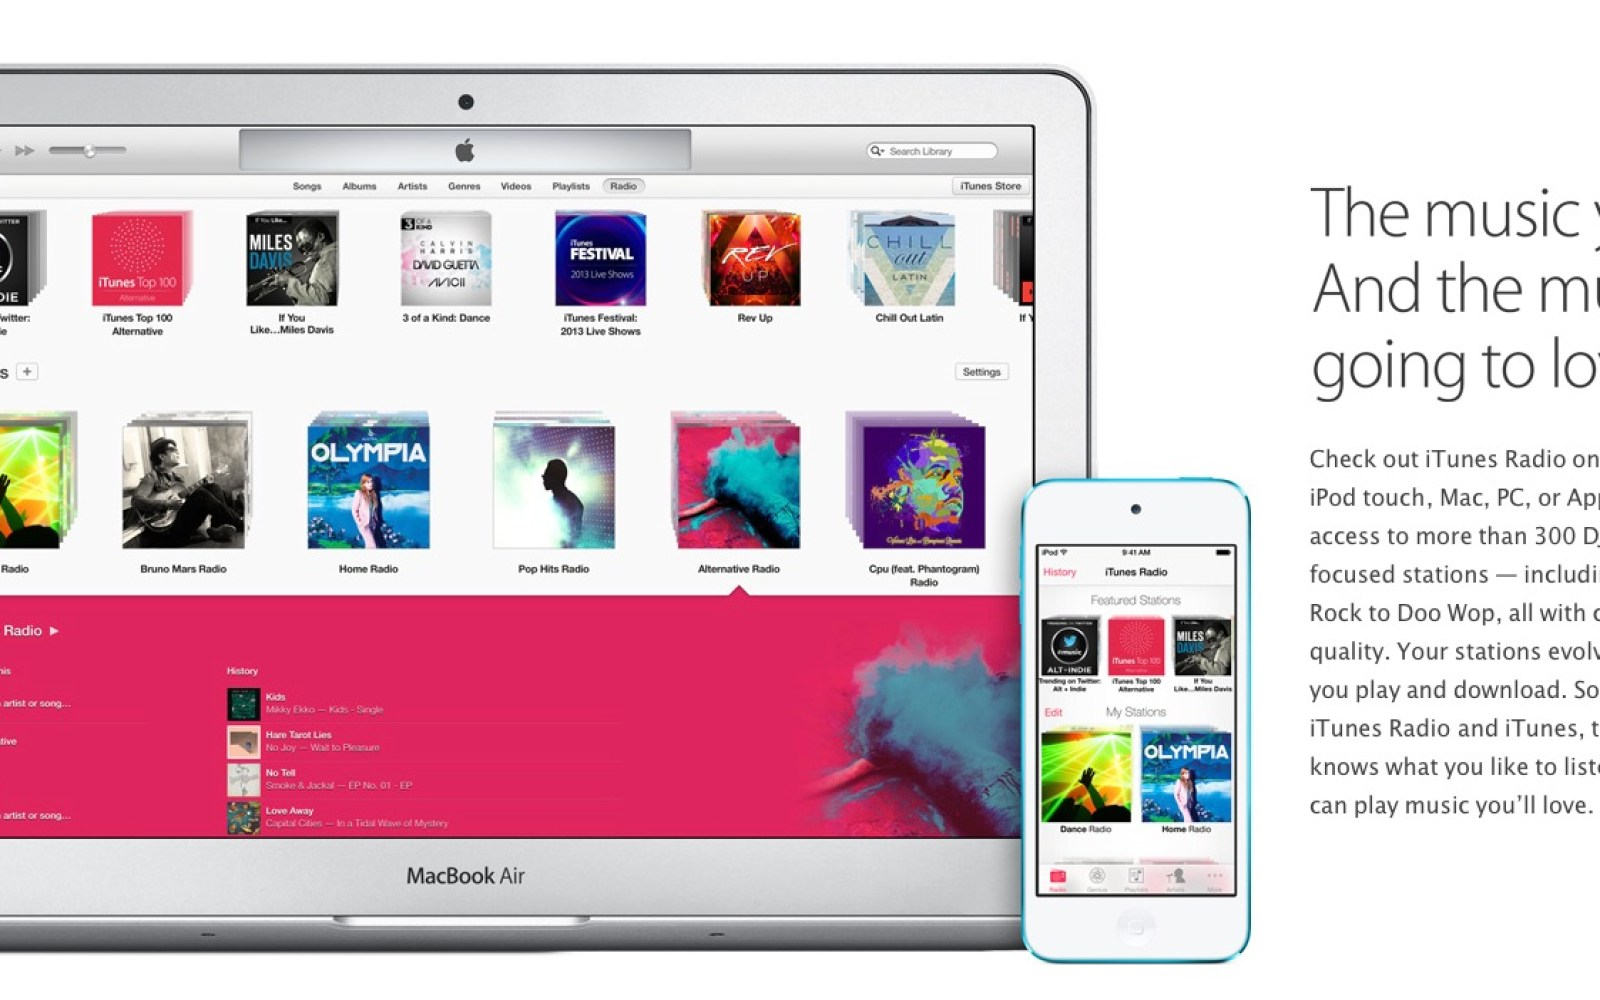 Long time ad ally Nissan teams up with Apple as exclusive automotive partner for iTunes Radio